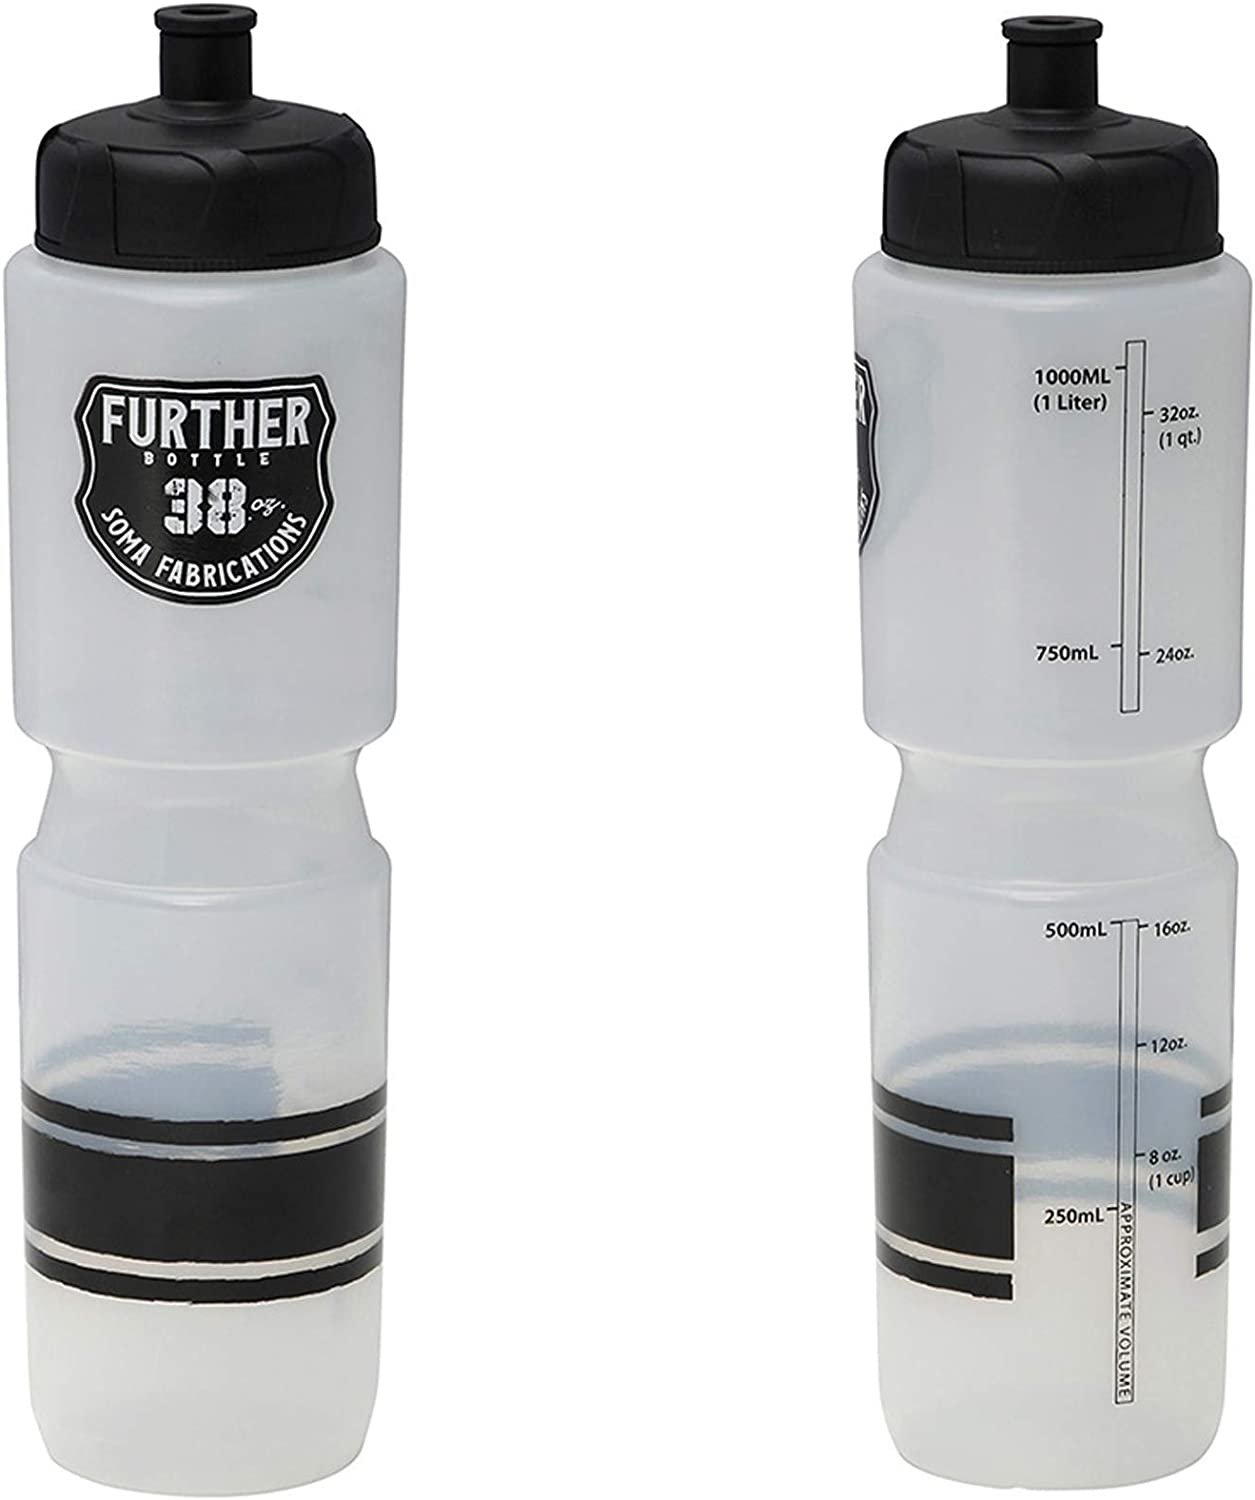 Soma Further 38oz Water Bottle Clear//Black